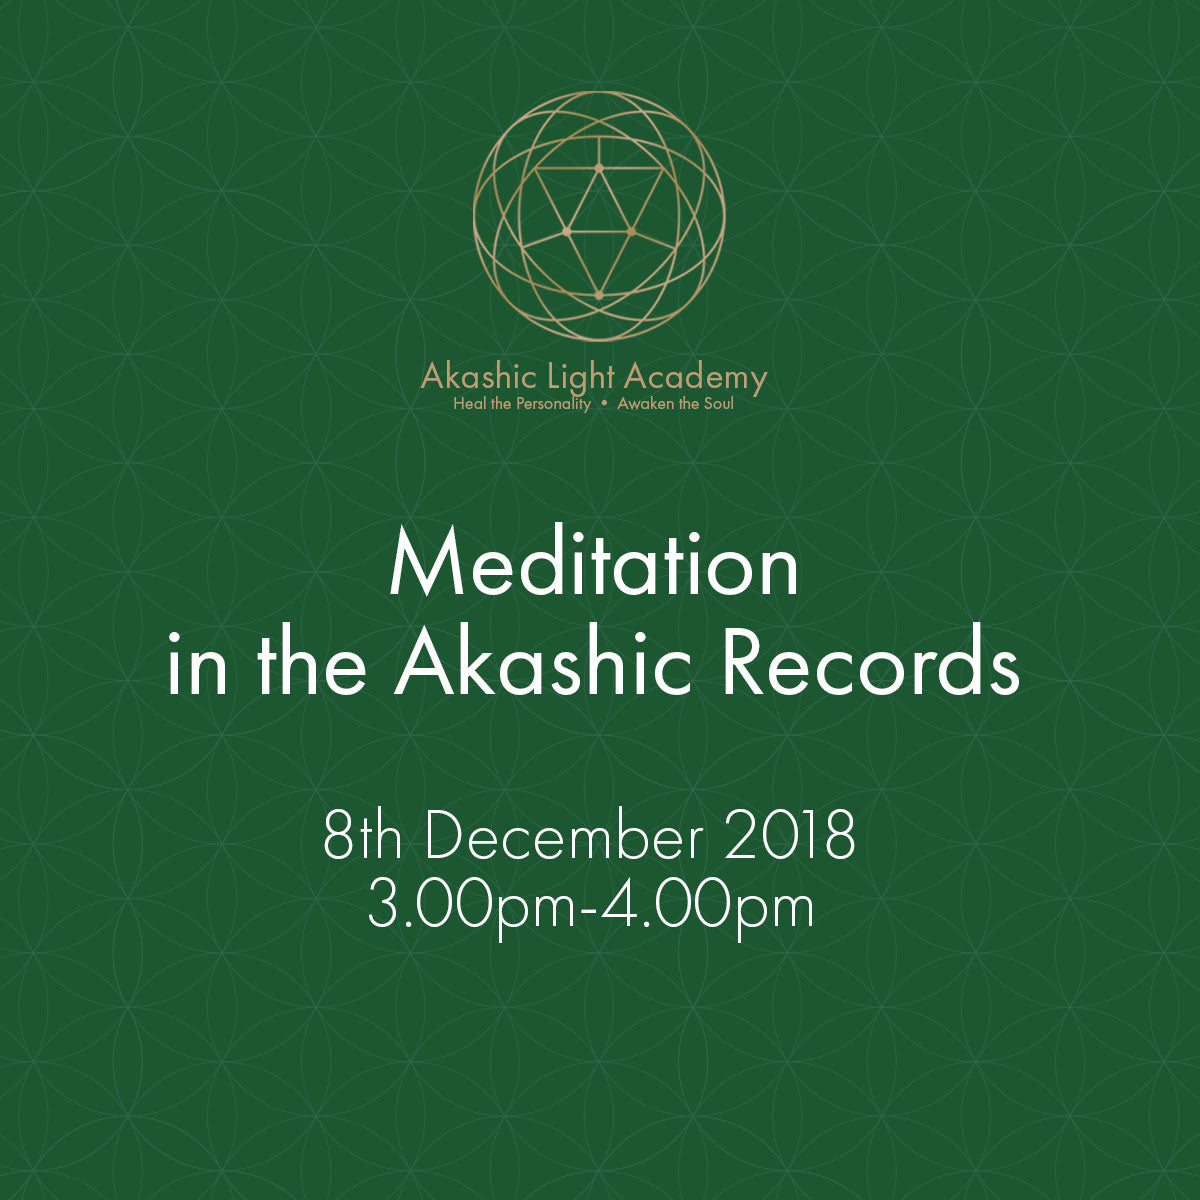 Meditation in the Akashic Records